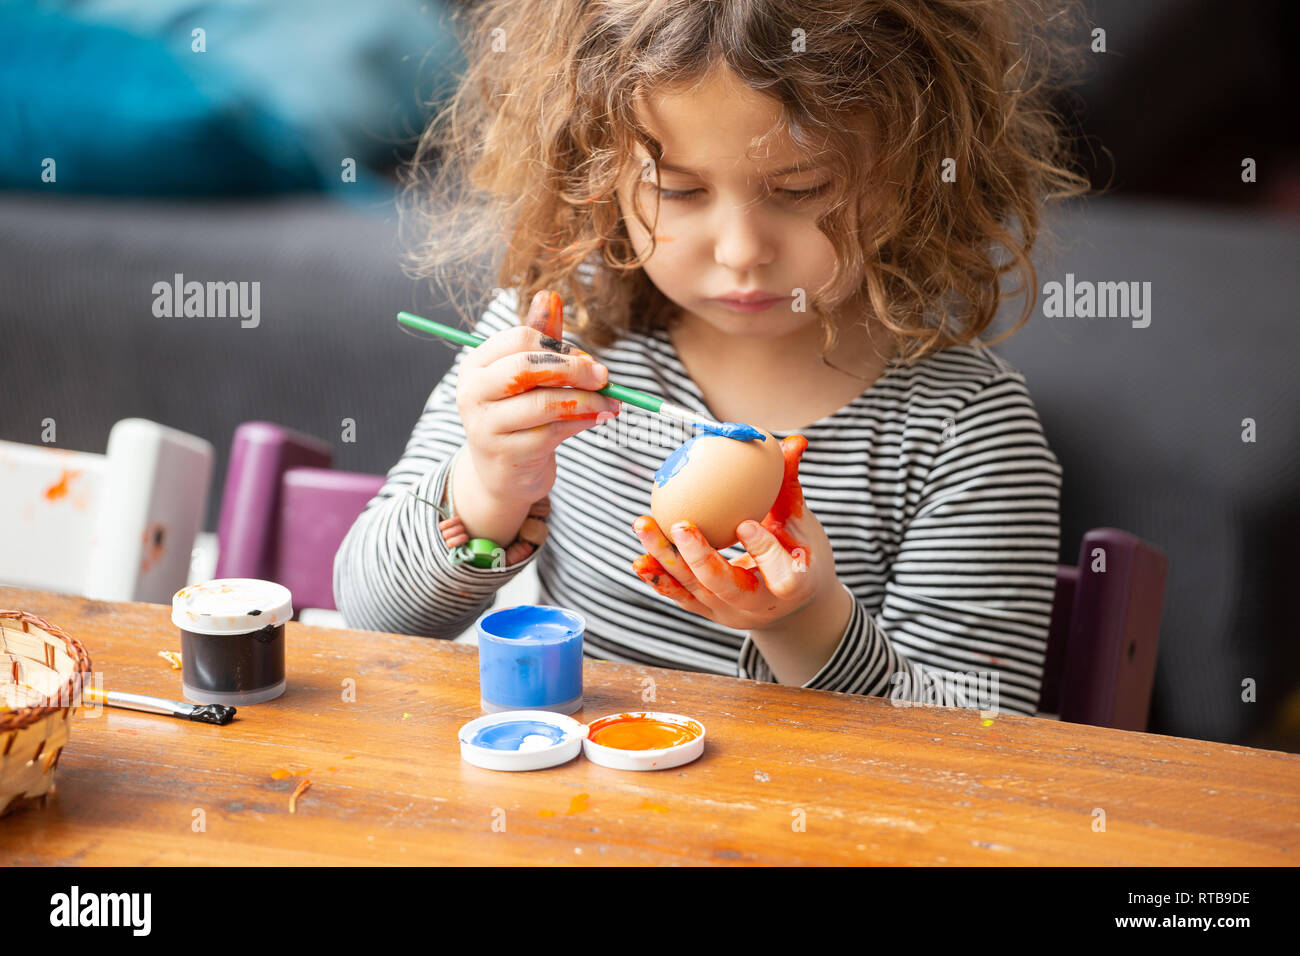 Toddler girl painting egg at table - Stock Image